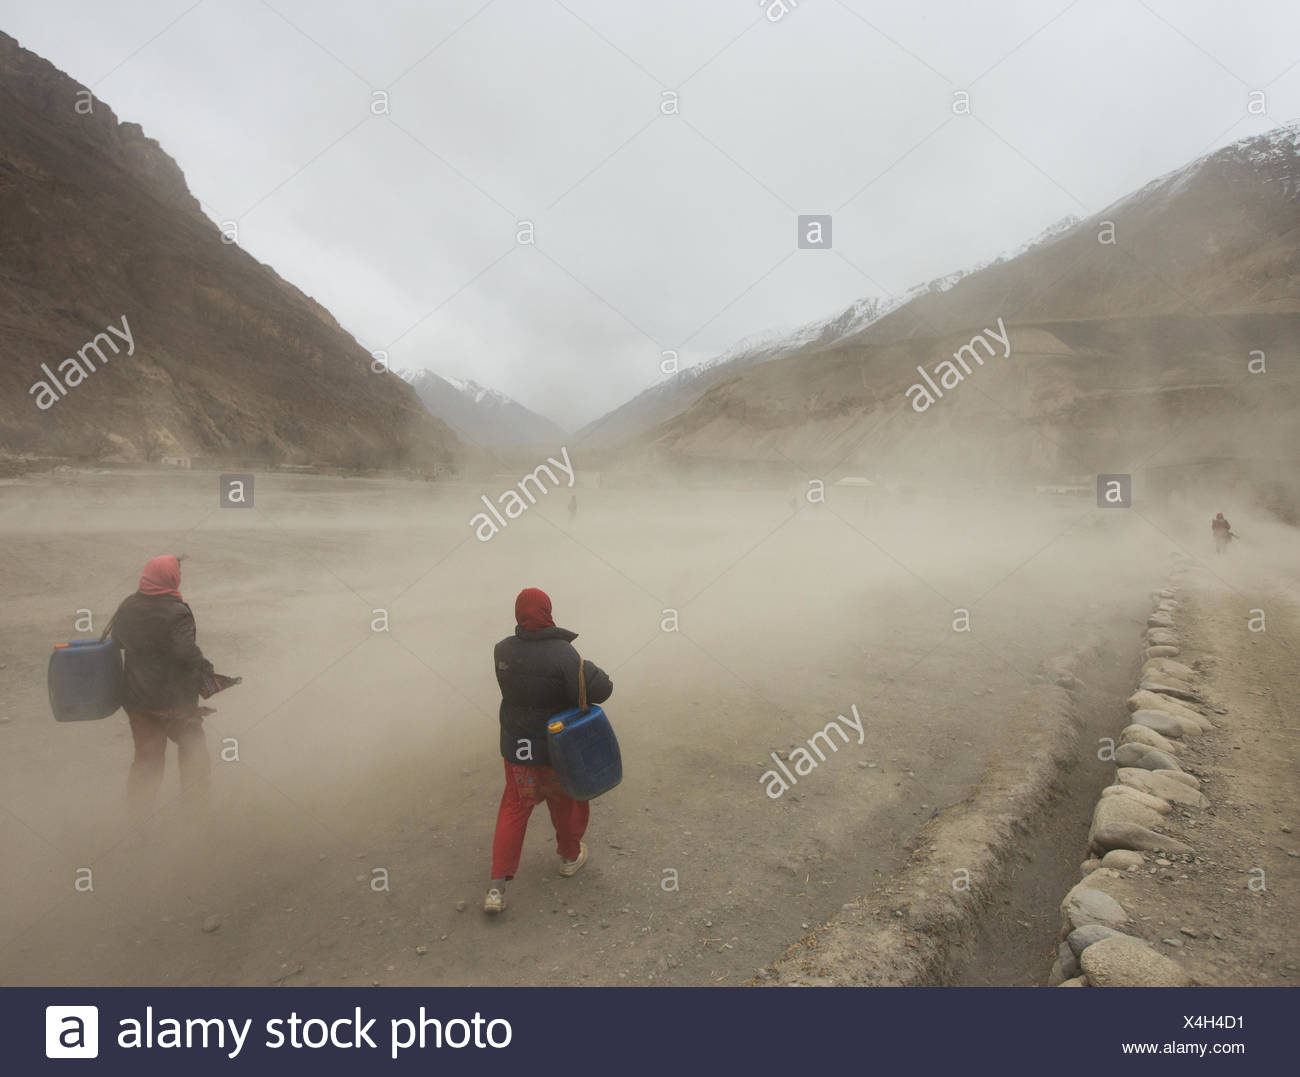 Women getting water in Shimsal, one of the remotest villages in the Karakoram mountains. - Stock Image